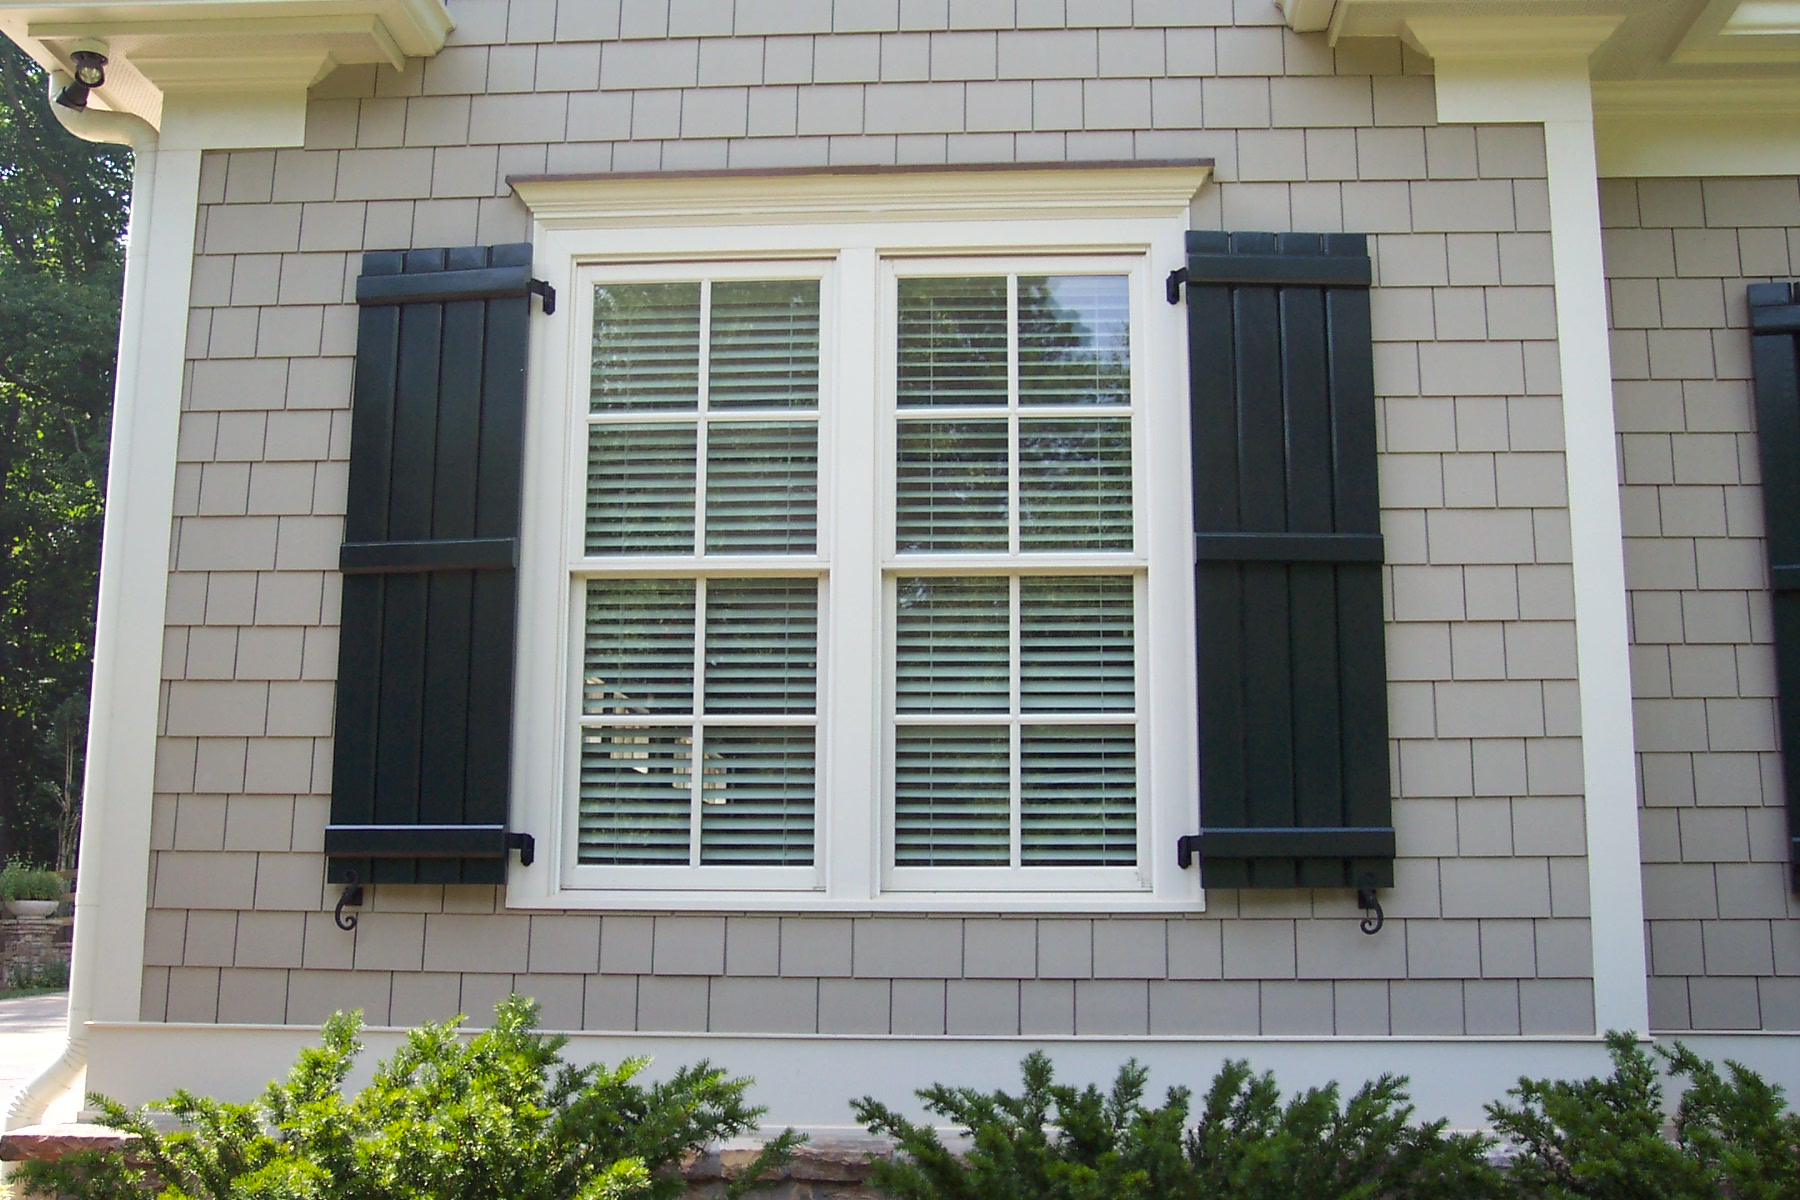 Board and batten shutters diy or buy - Pictures of exterior shutters on homes ...